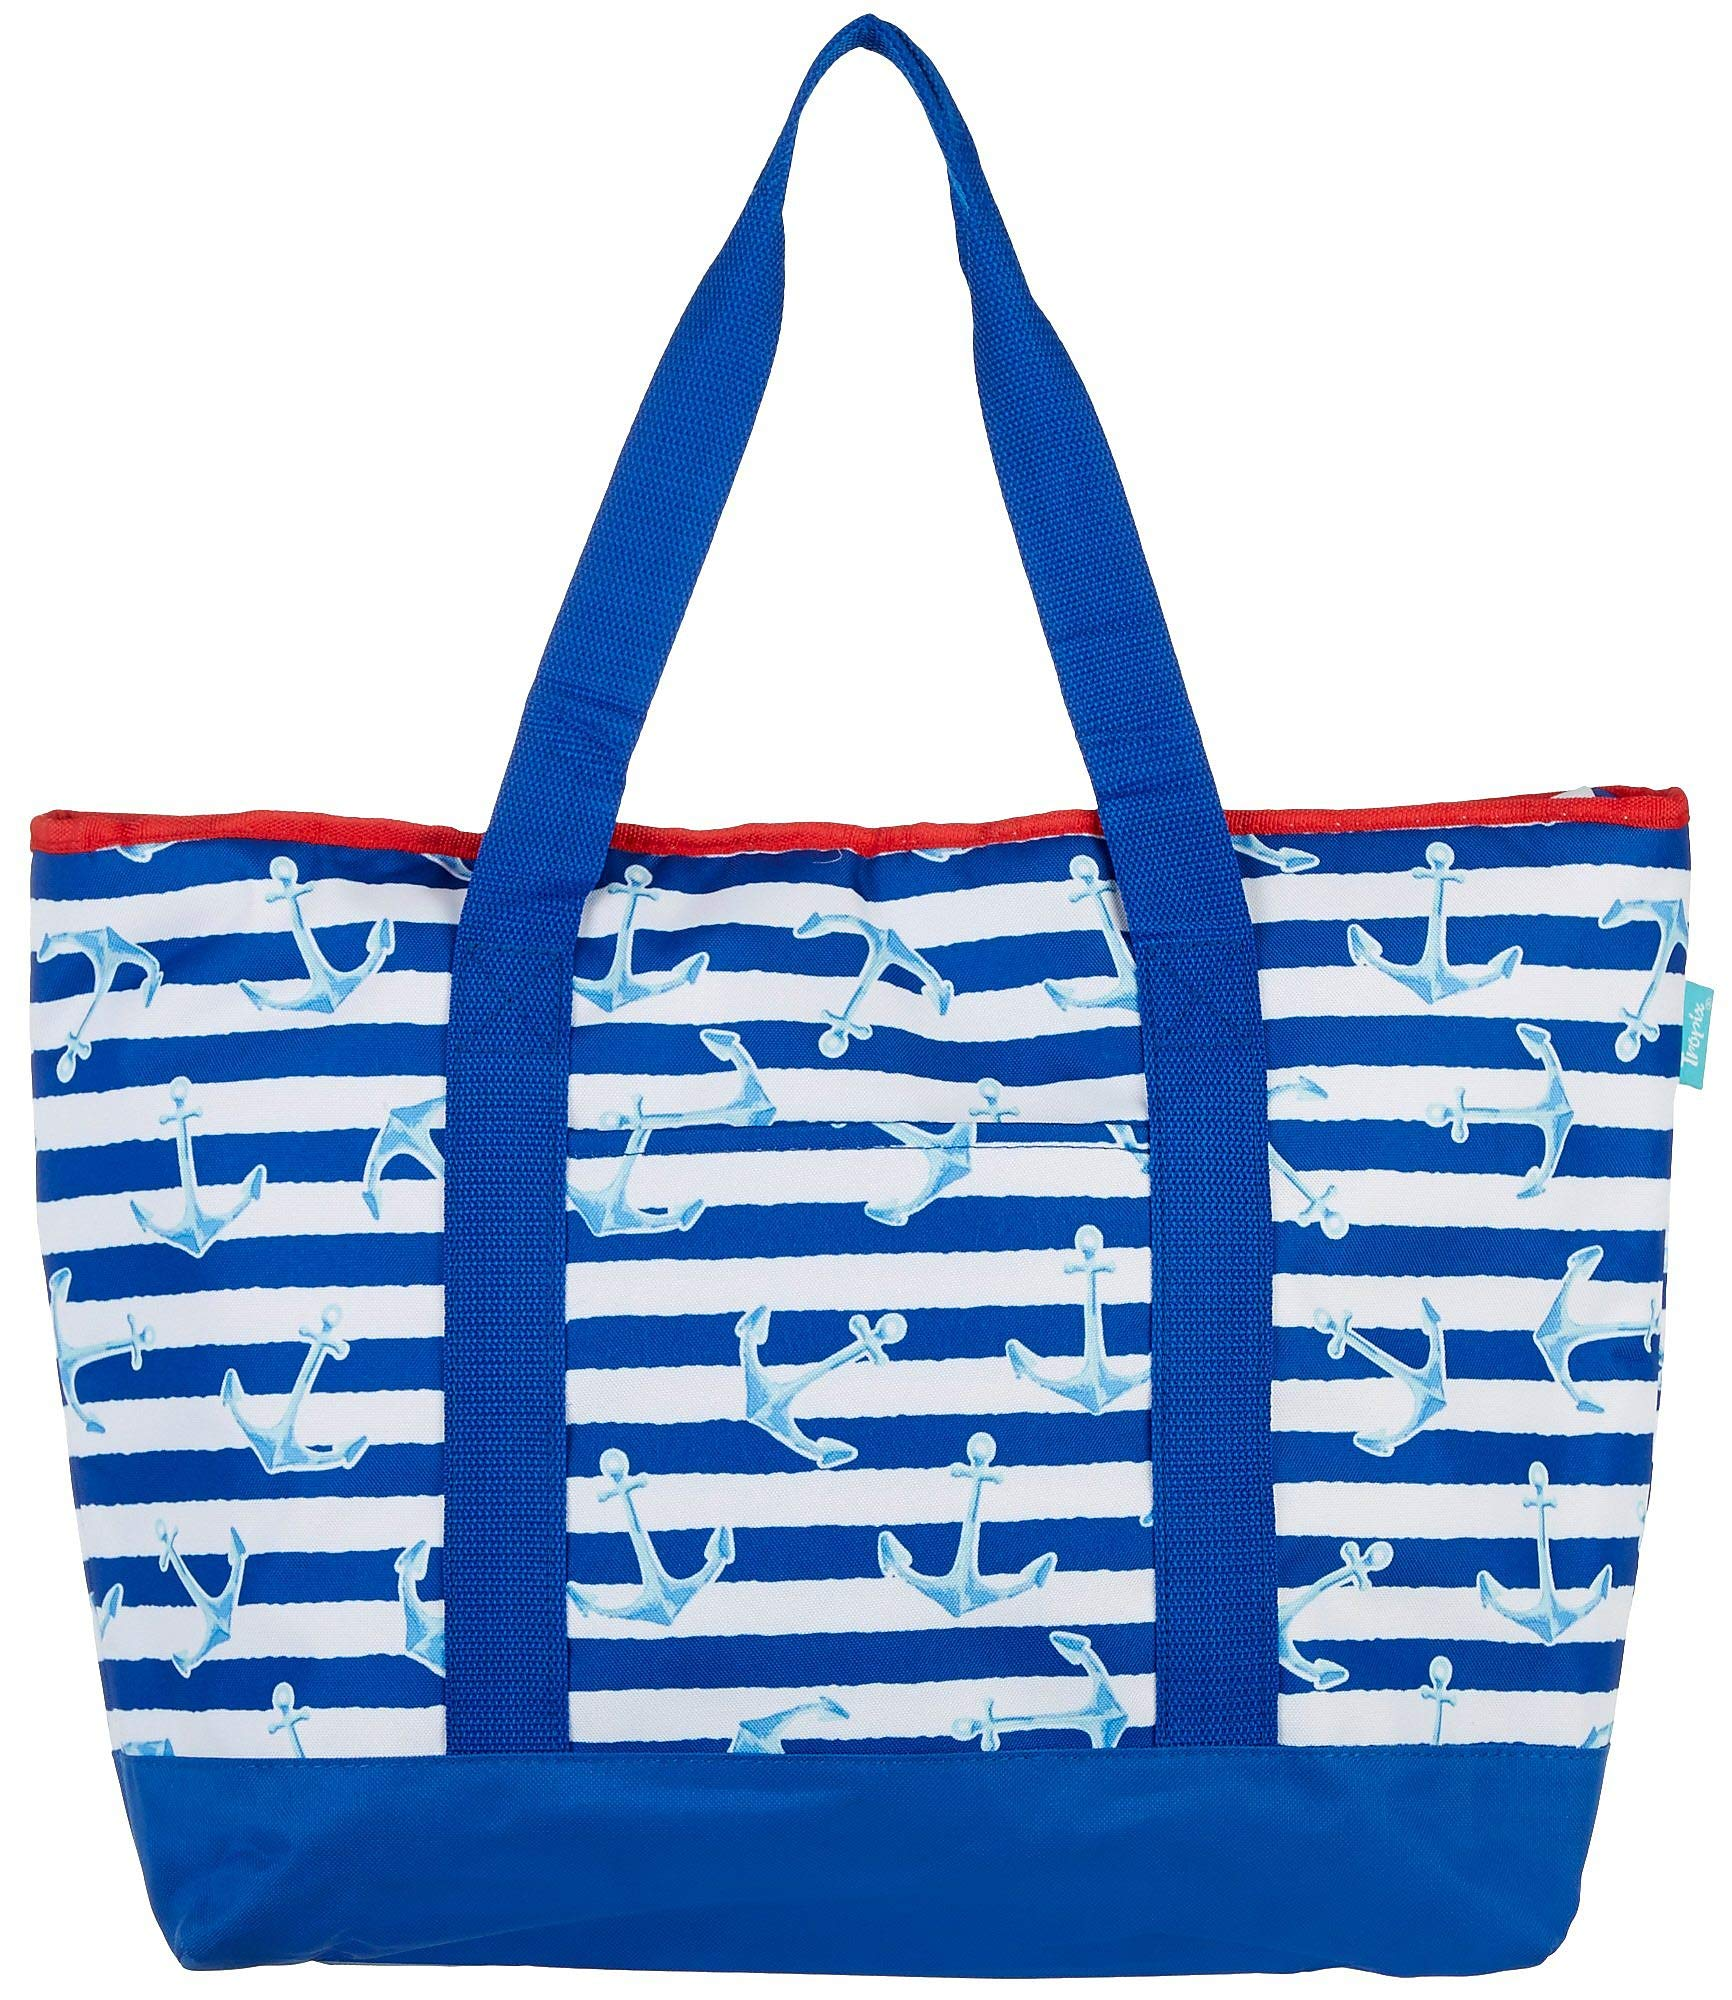 Tropix Anchor Stripe Cooler Tote One Size Blue/White/red